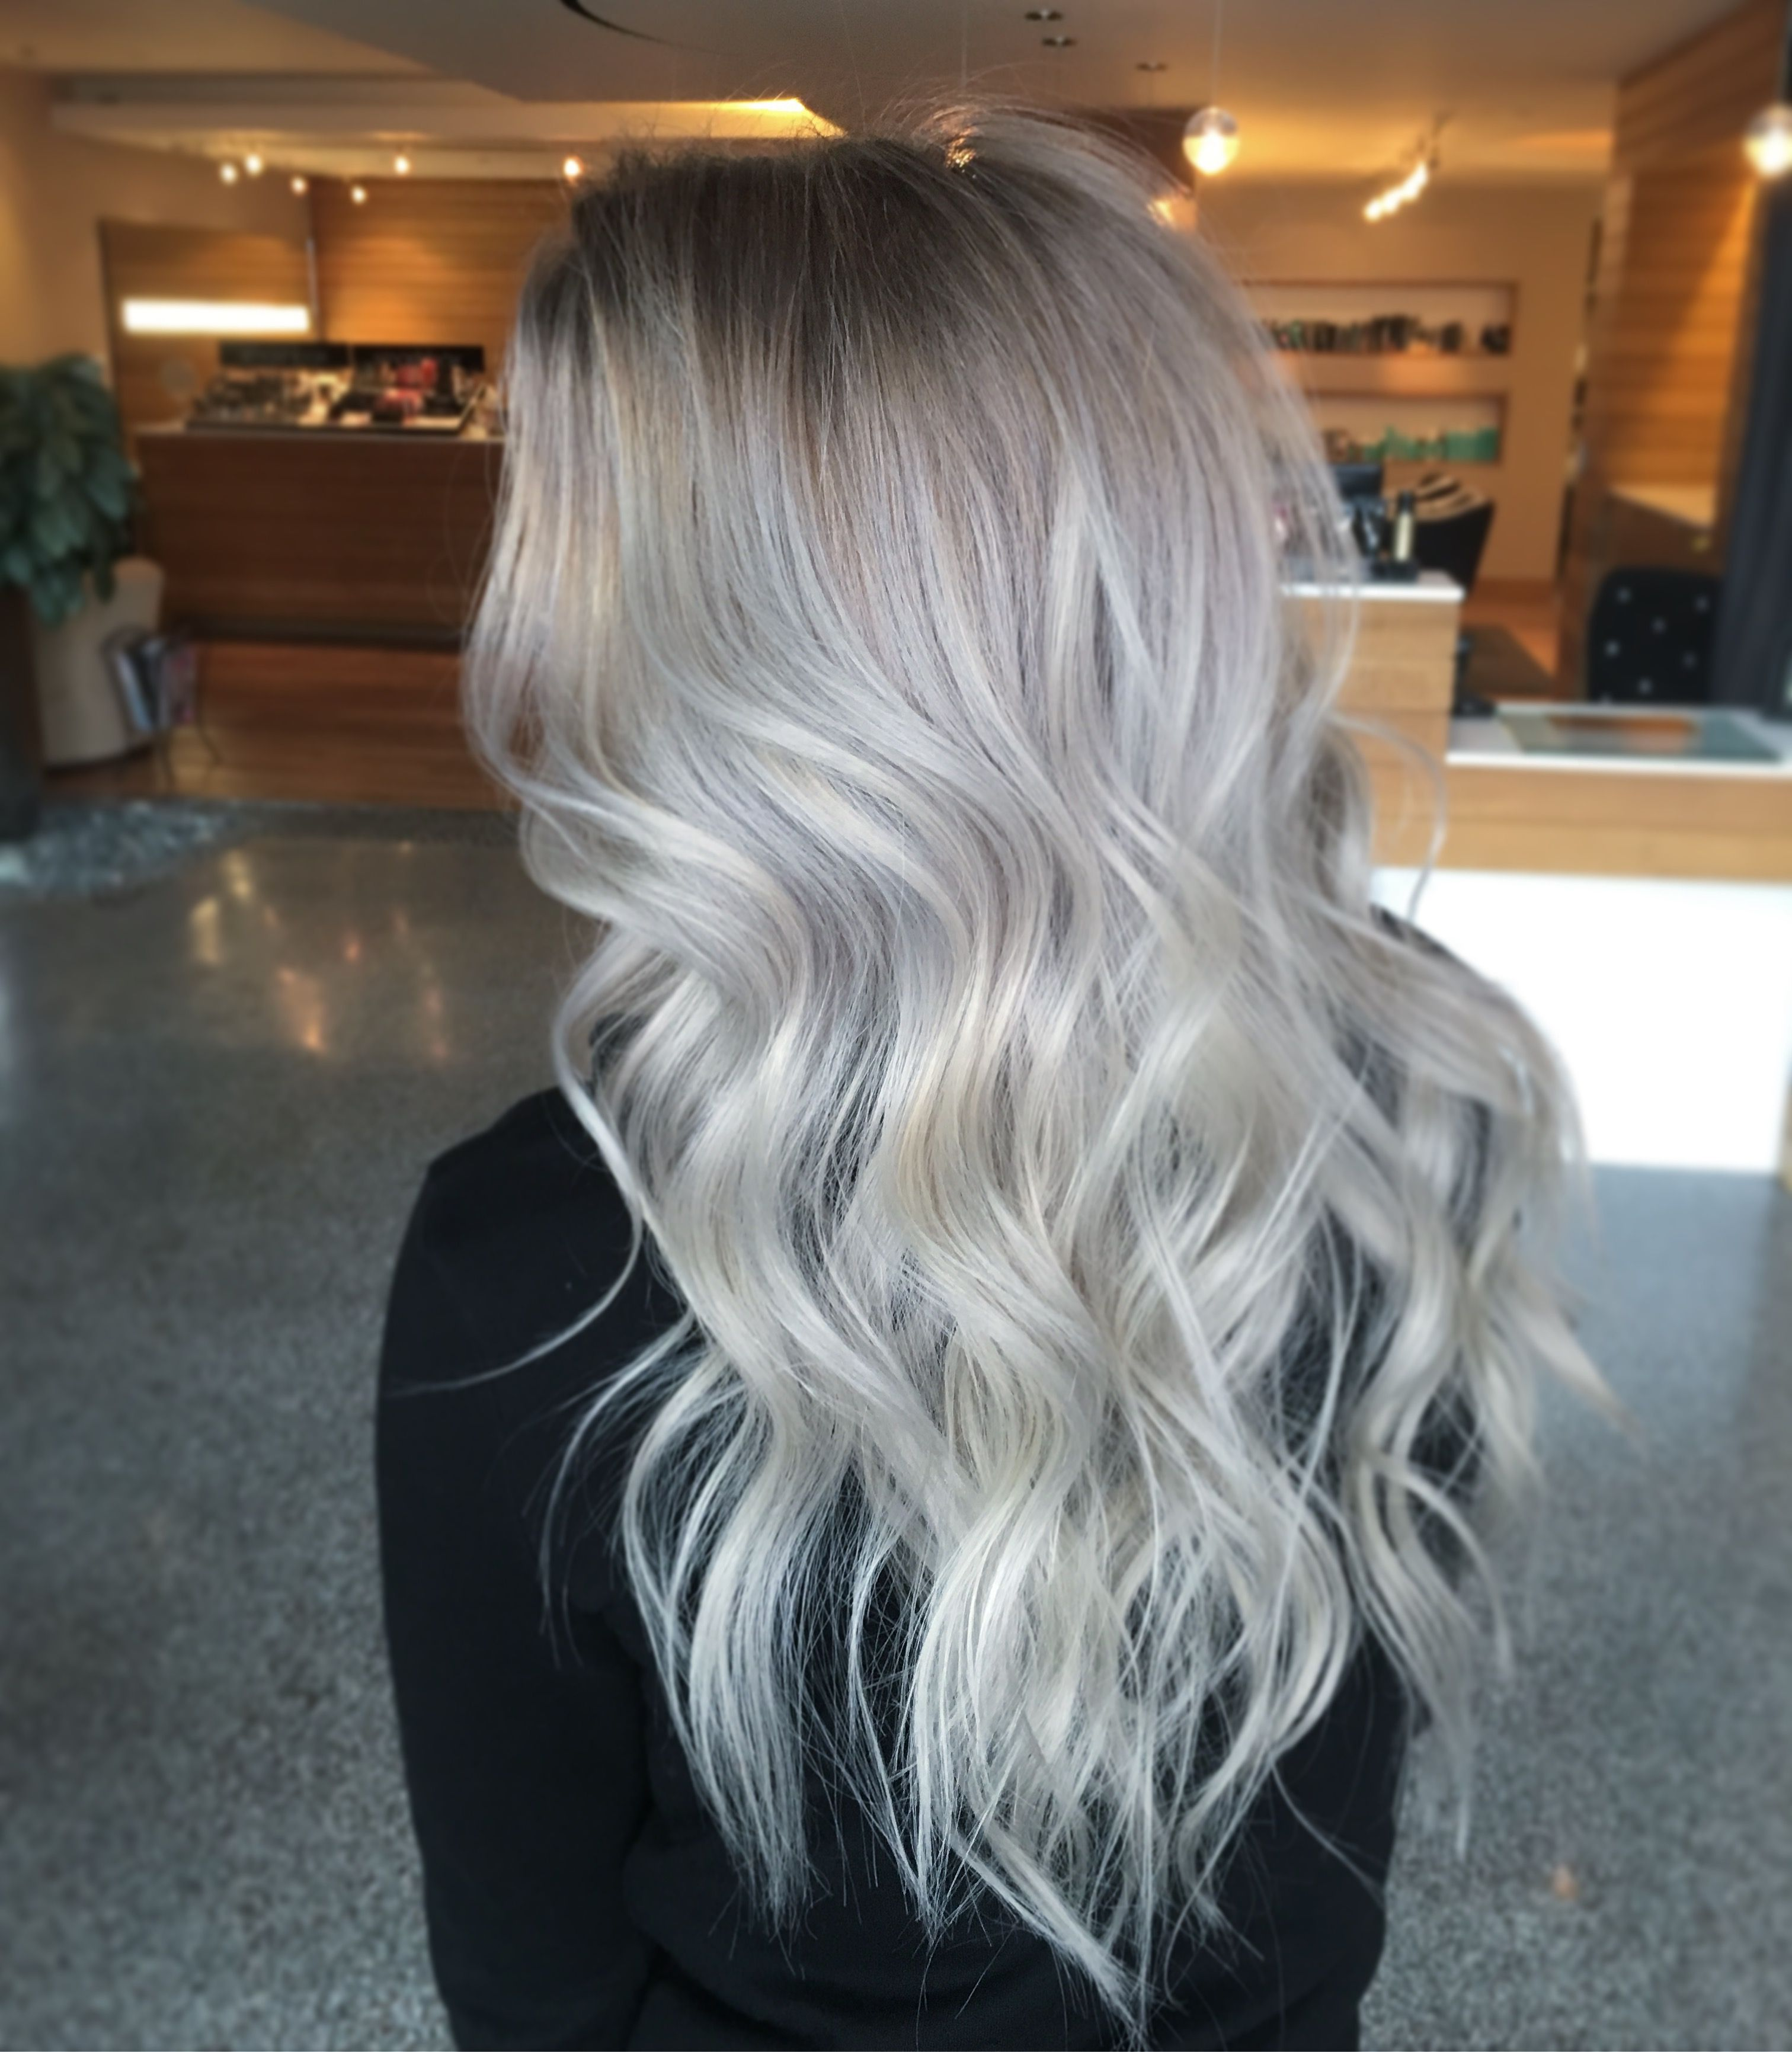 Silver blonde hair Hair Pinterest